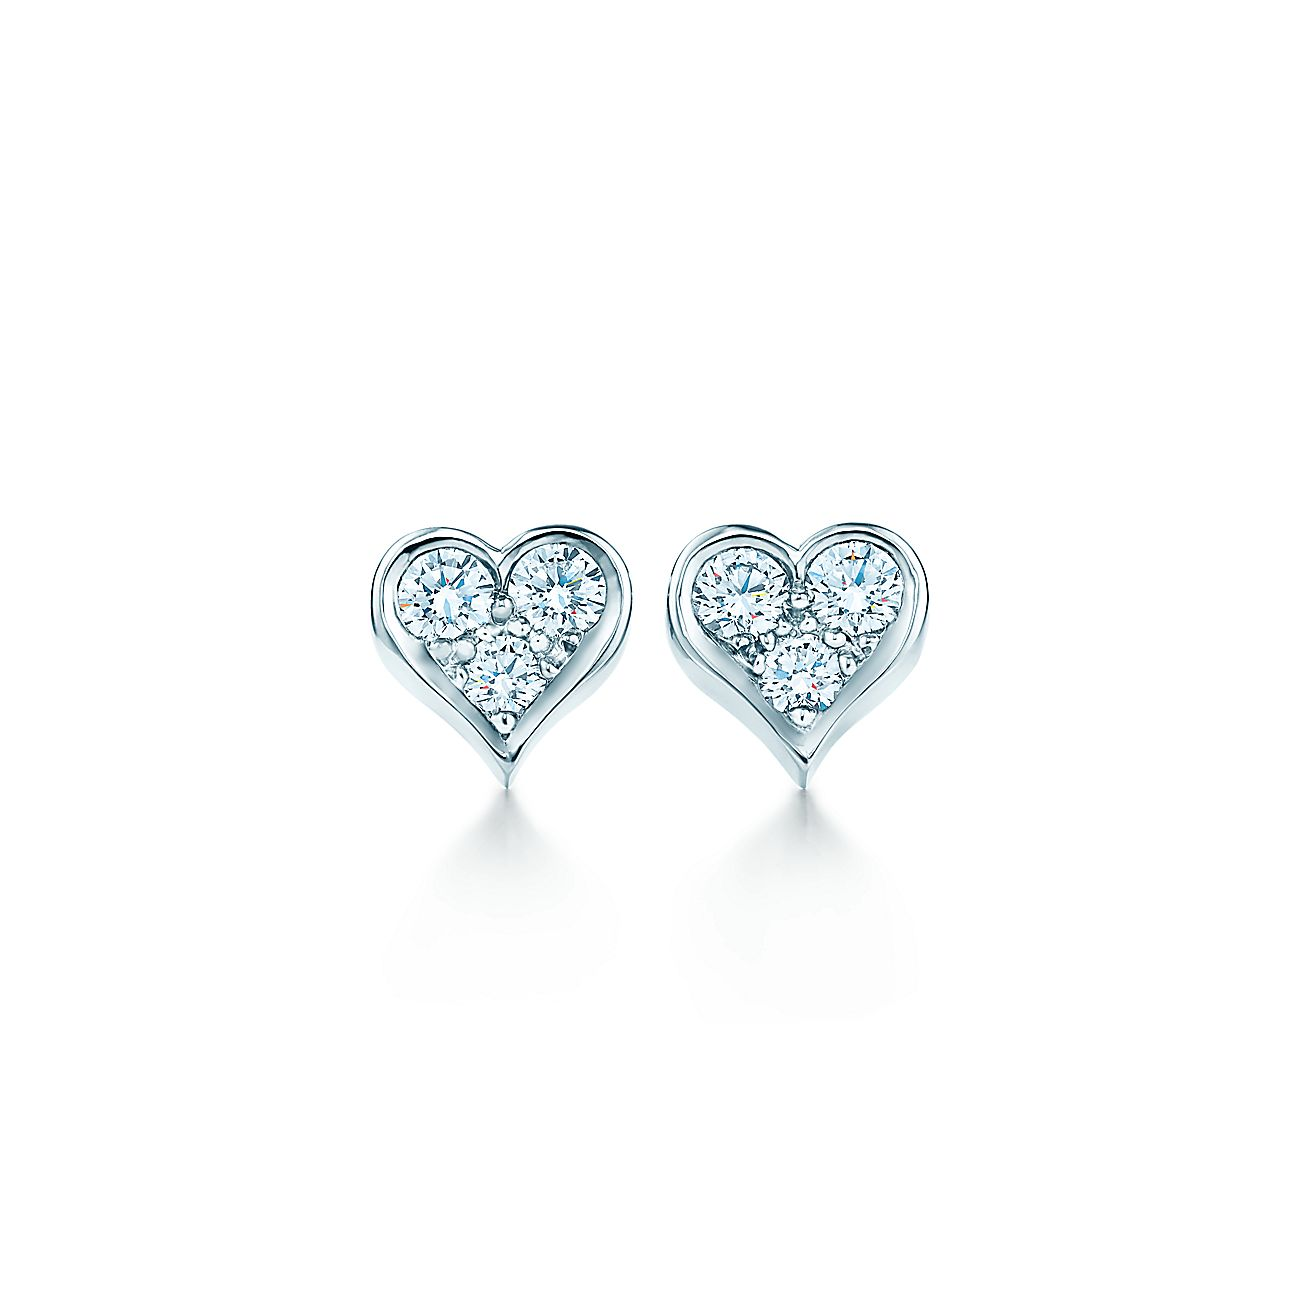 product com by earrings notonthehighstreet angel silver open heart original highlandangel highland